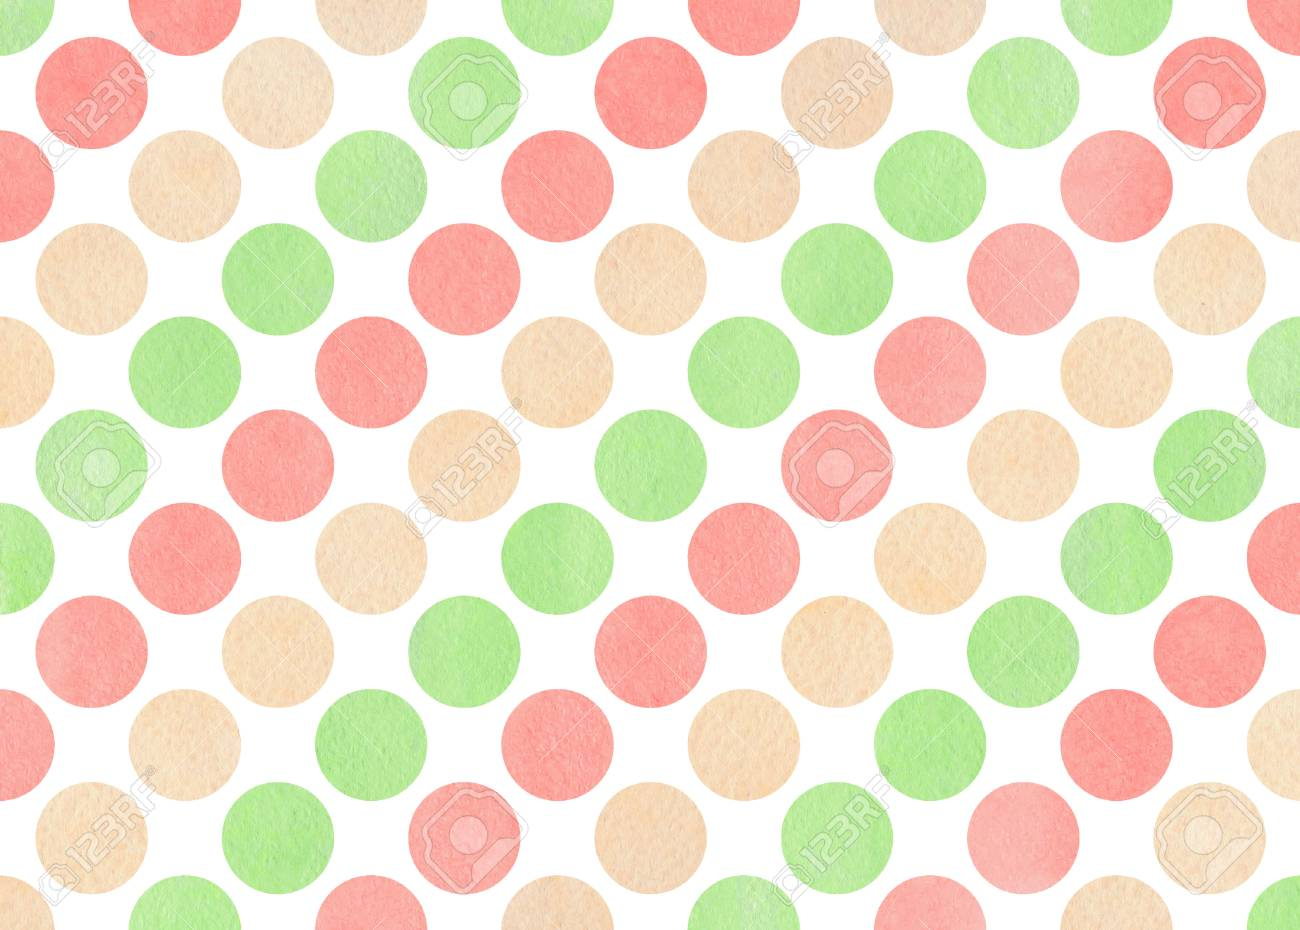 Stock Photo   Watercolor Light Pink, Beige And Mint Green Polka Dot  Background. Pattern With Colorful Polka Dots For Scrapbooks, Wedding, Party  Or Baby ...